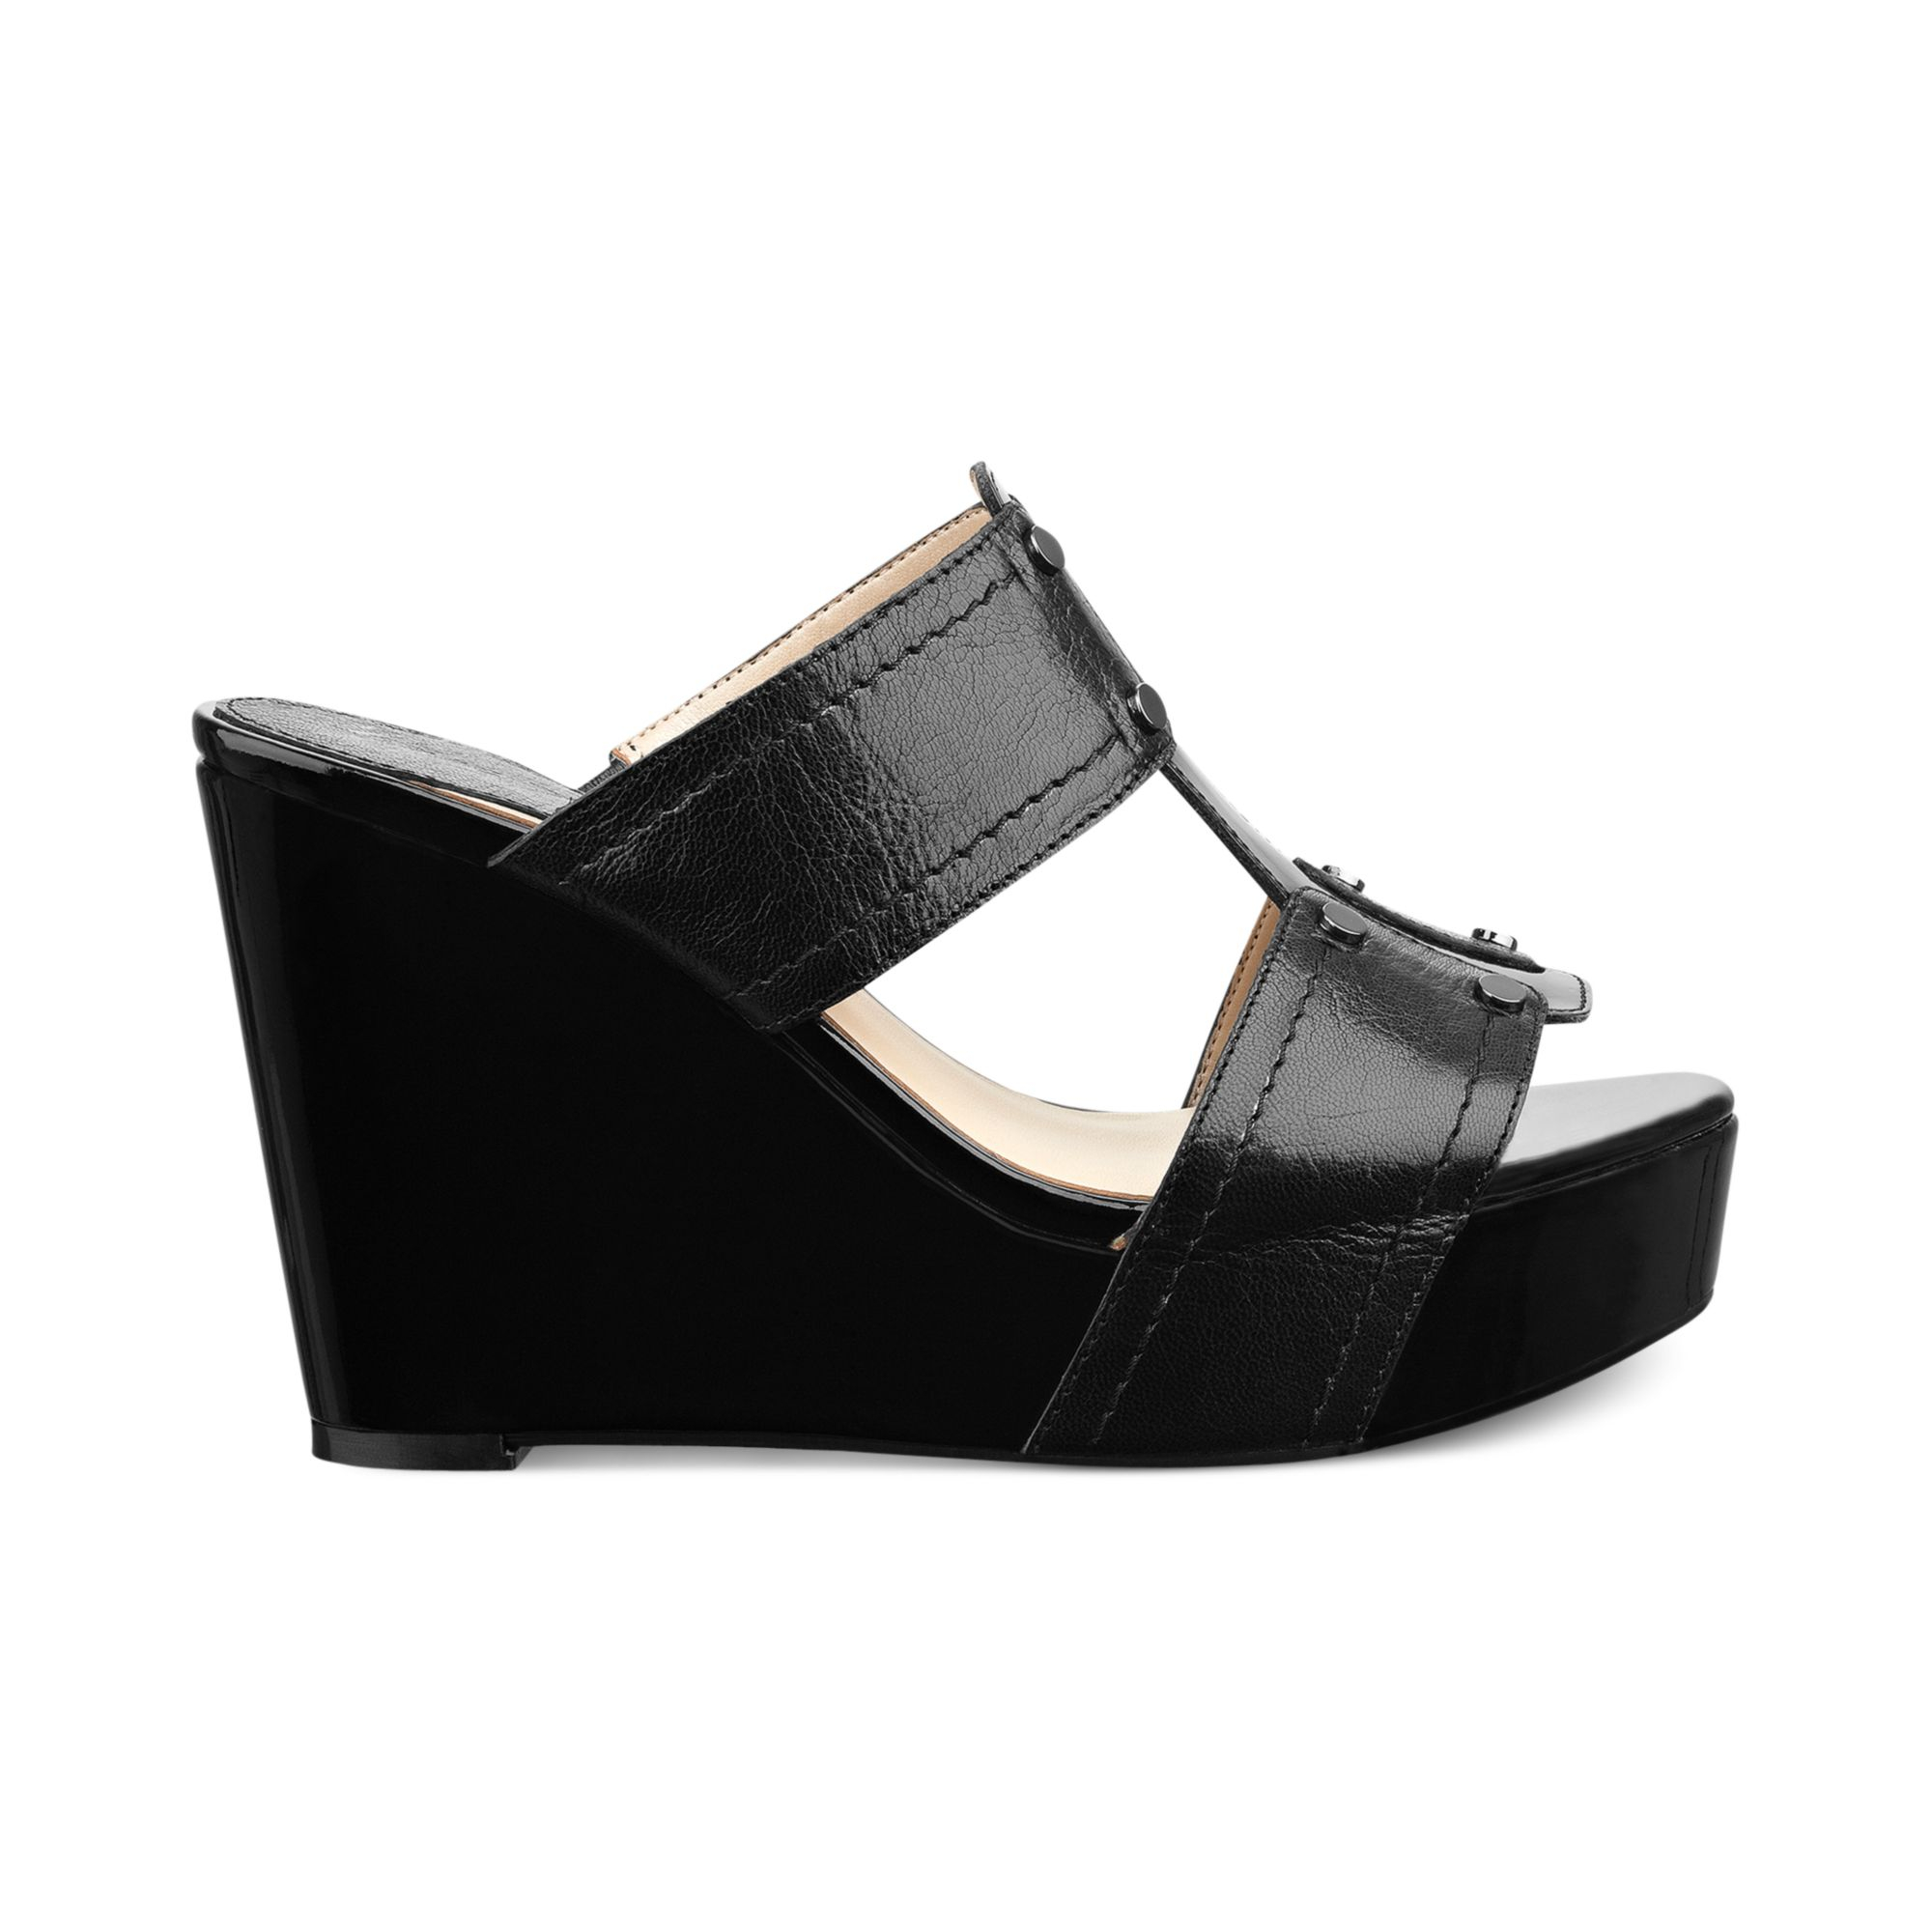 28e1d65ab6b Marc fisher wedge shoes : Macys shop online pickup in store